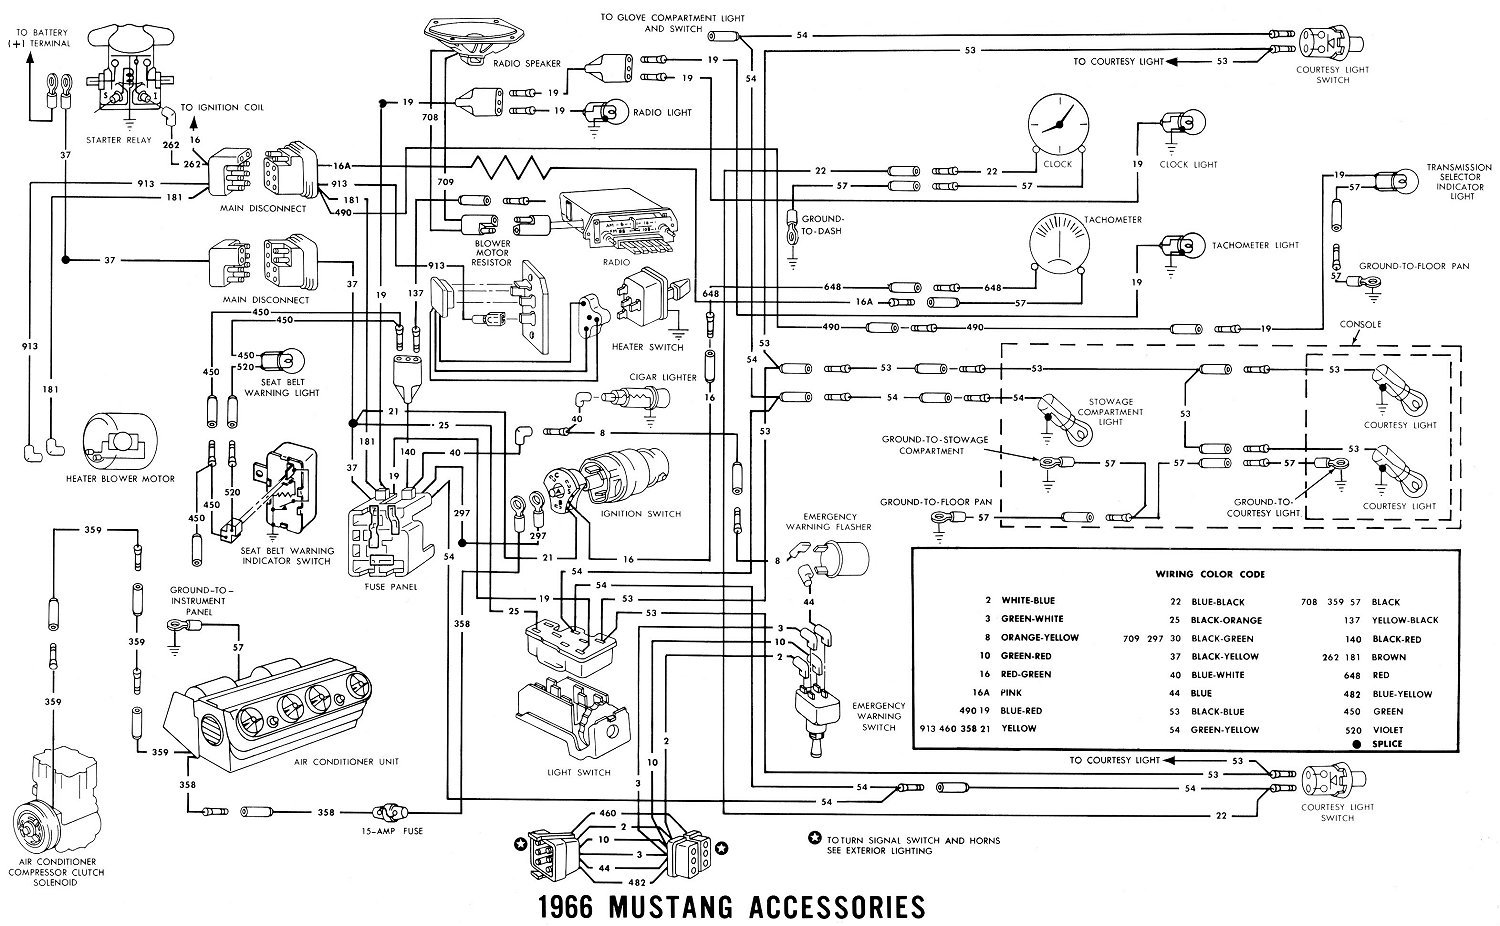 1966 Mustang's main power supply to fuse box-66acces1.jpg